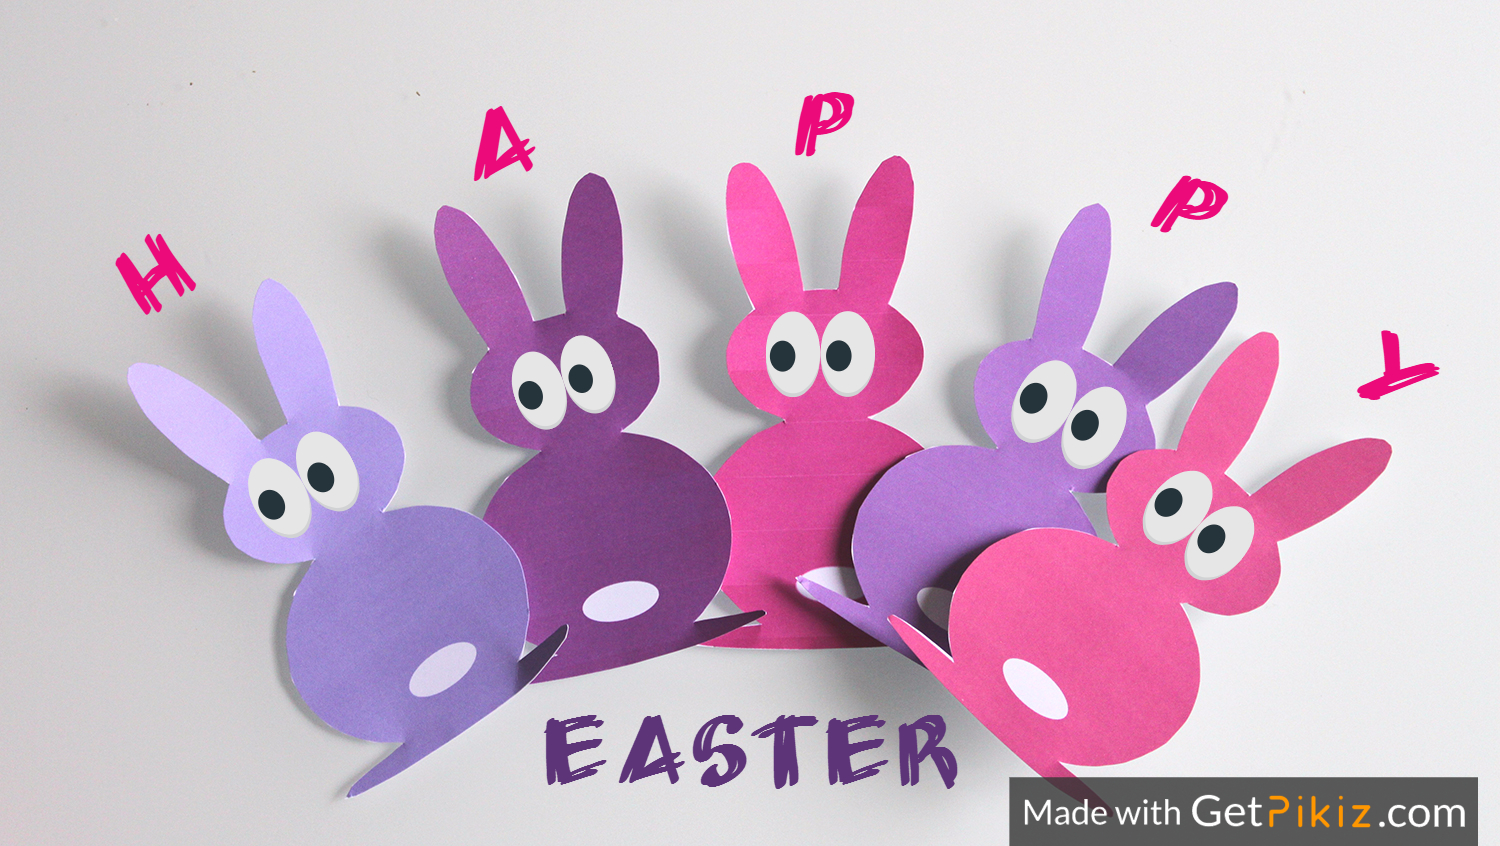 H P A Y P EASTER